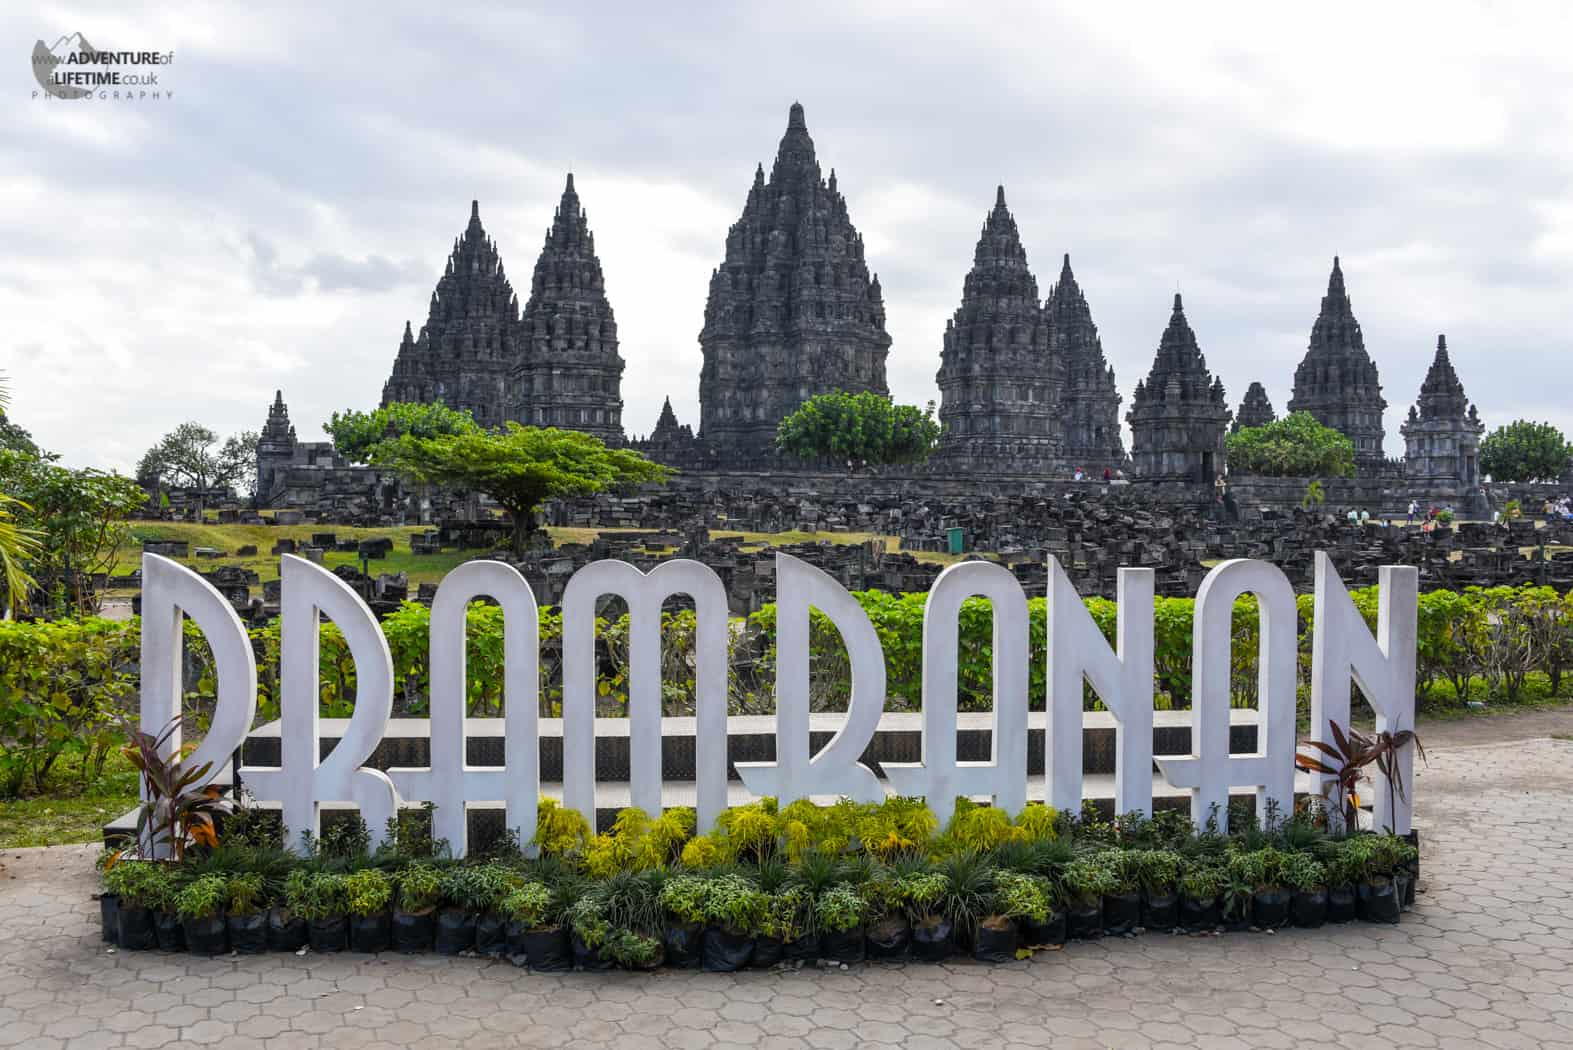 The entrance to Prambanan temple, Java